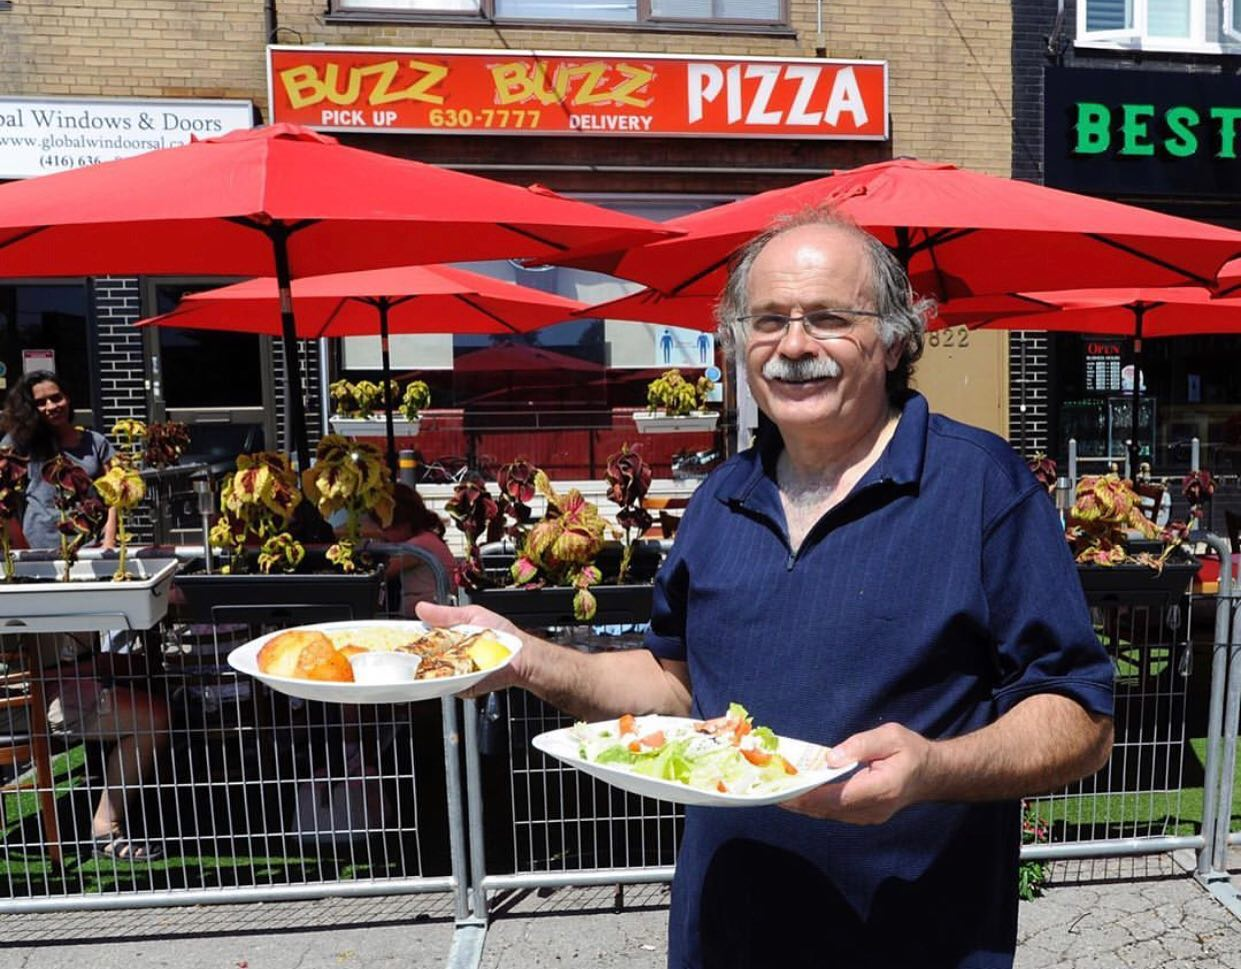 Tony-Buzz-Buzz-Pizza-Restaurant